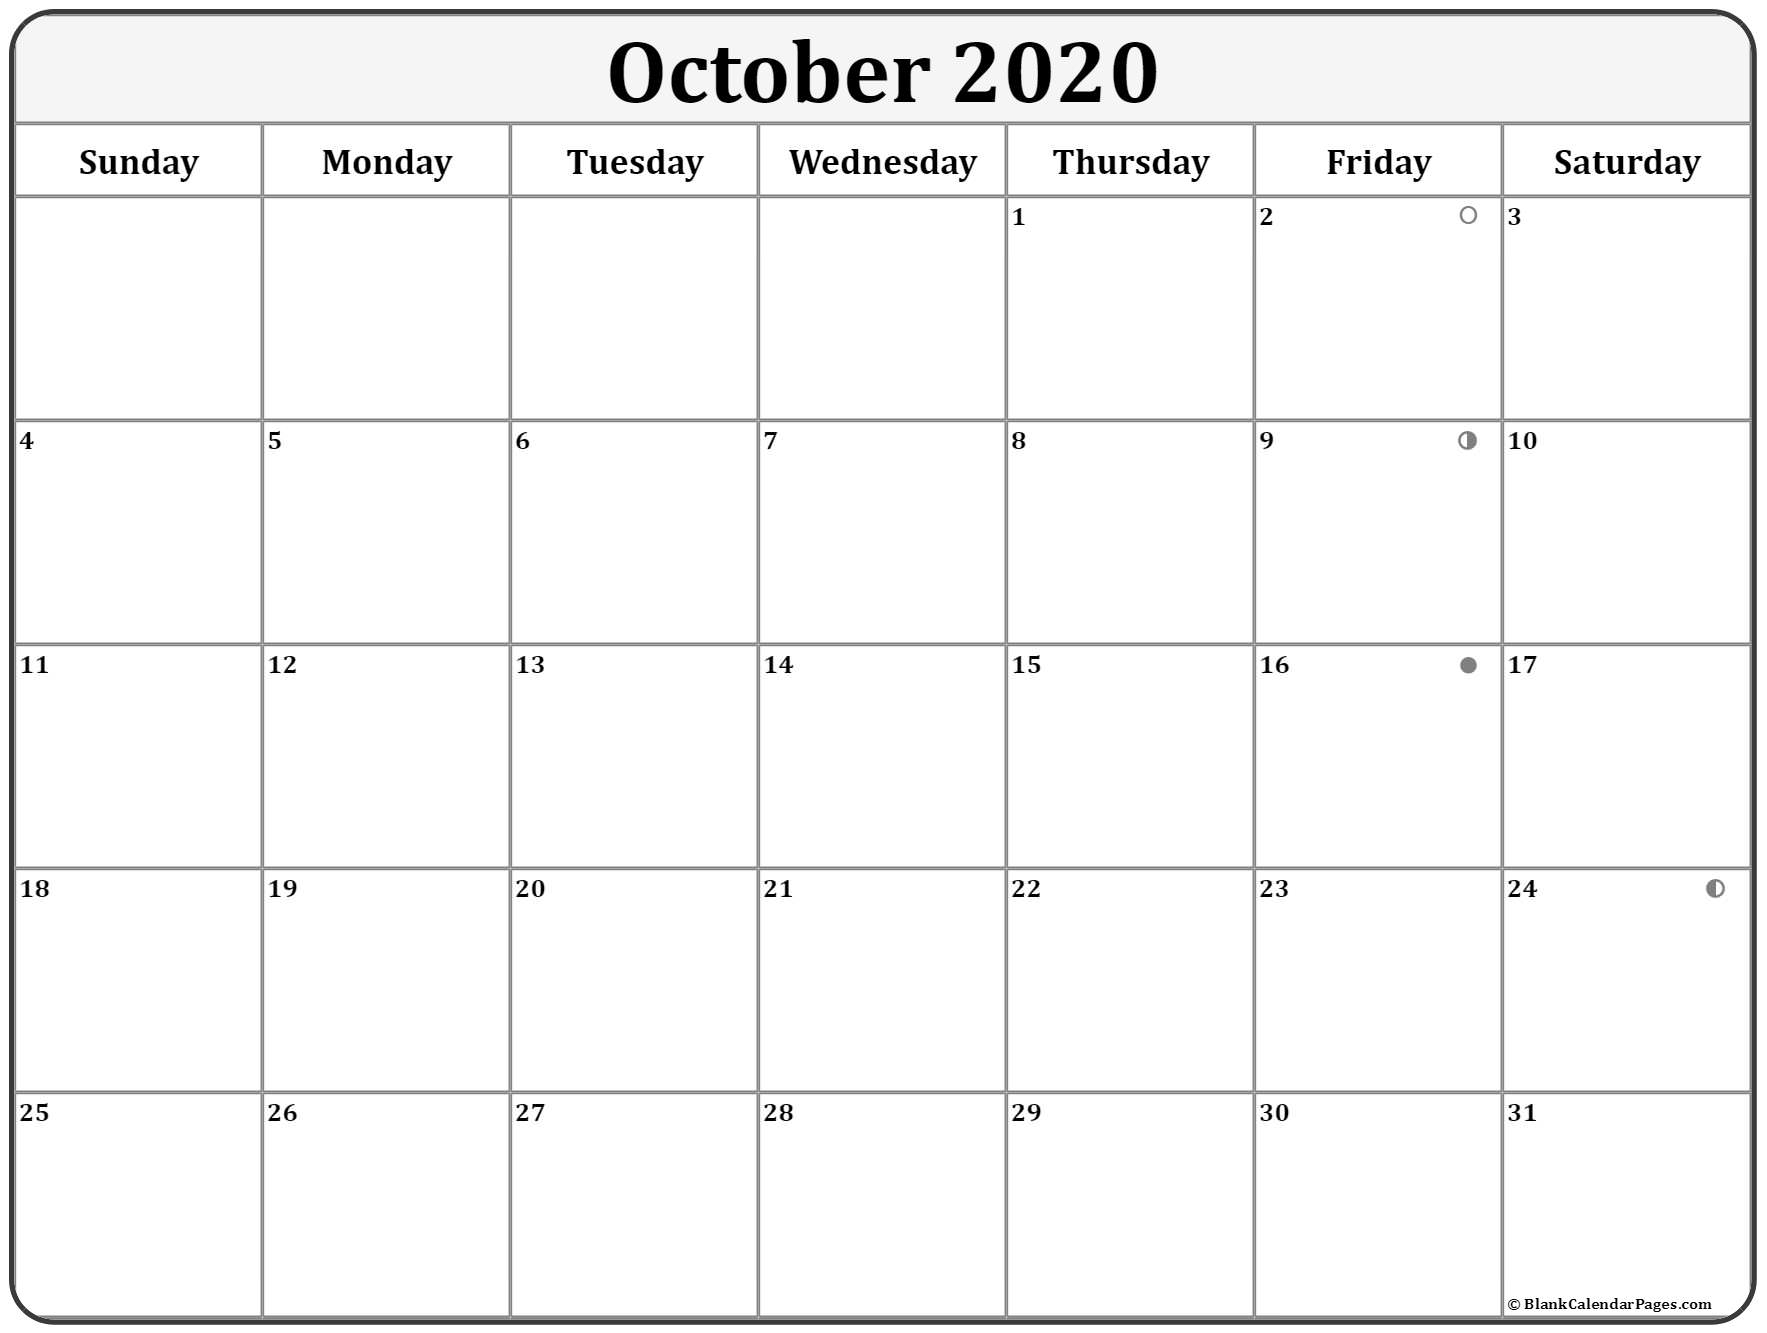 October 2020 Lunar Calendar | Moon Phase Calendar intended for Lunar Calendar October 2020